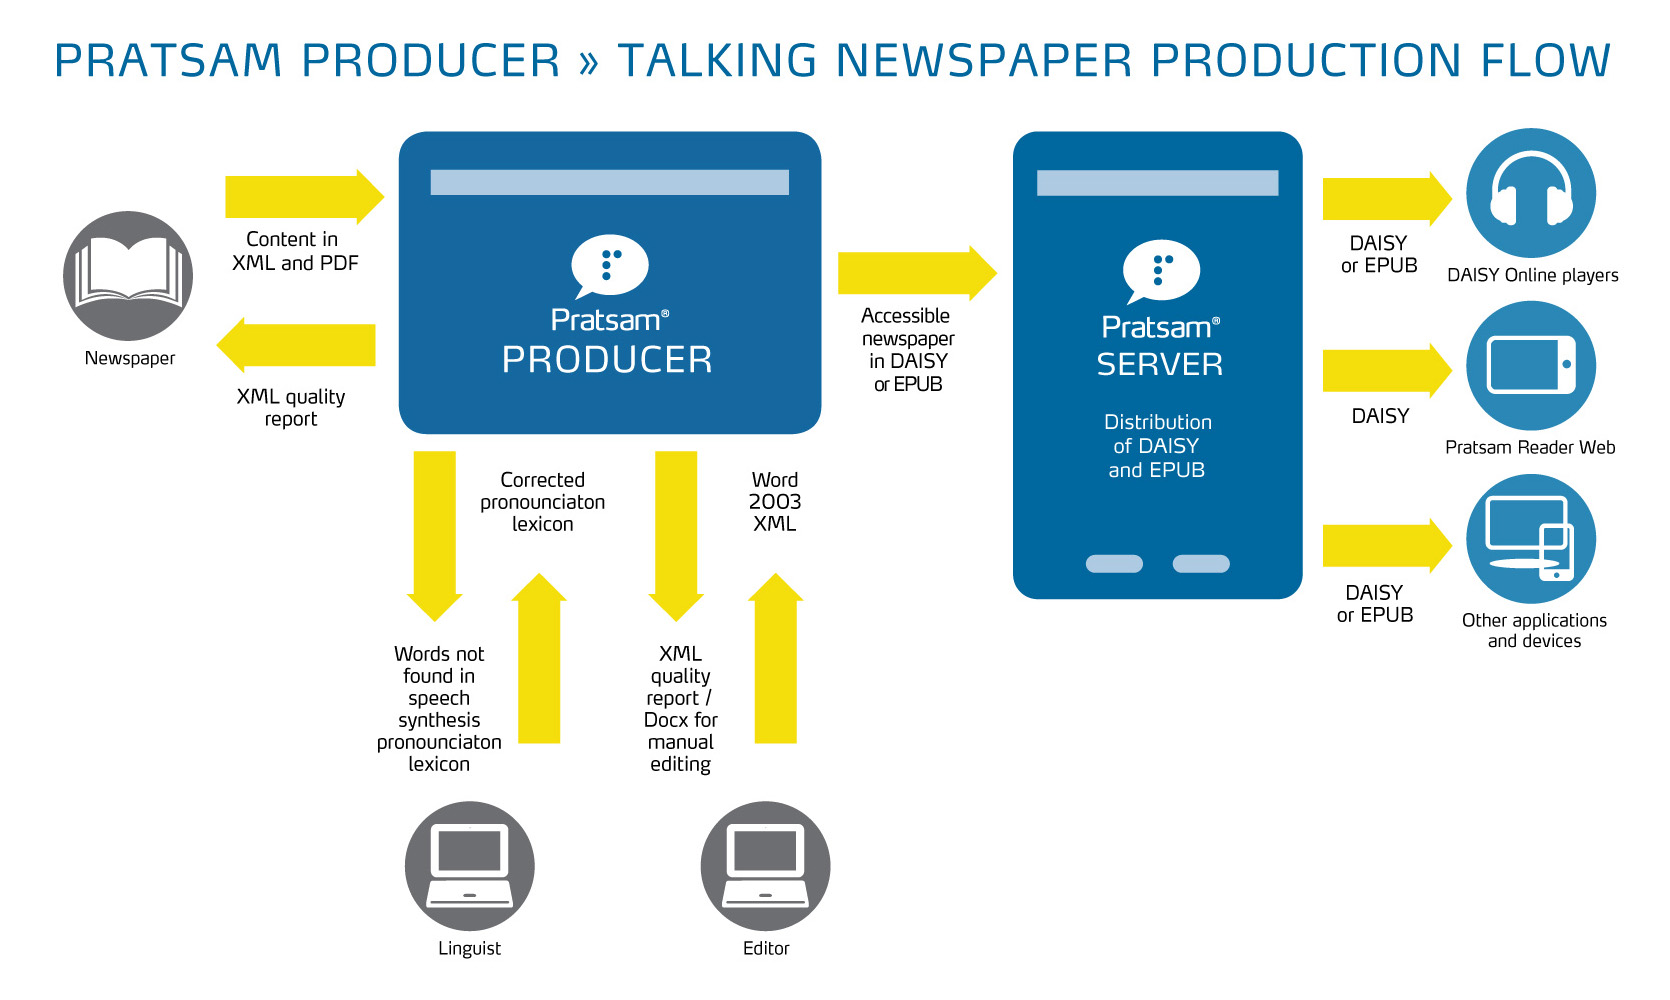 Graphical overview of Pratsam Producer when producing newspapers in DAISY or EPUB